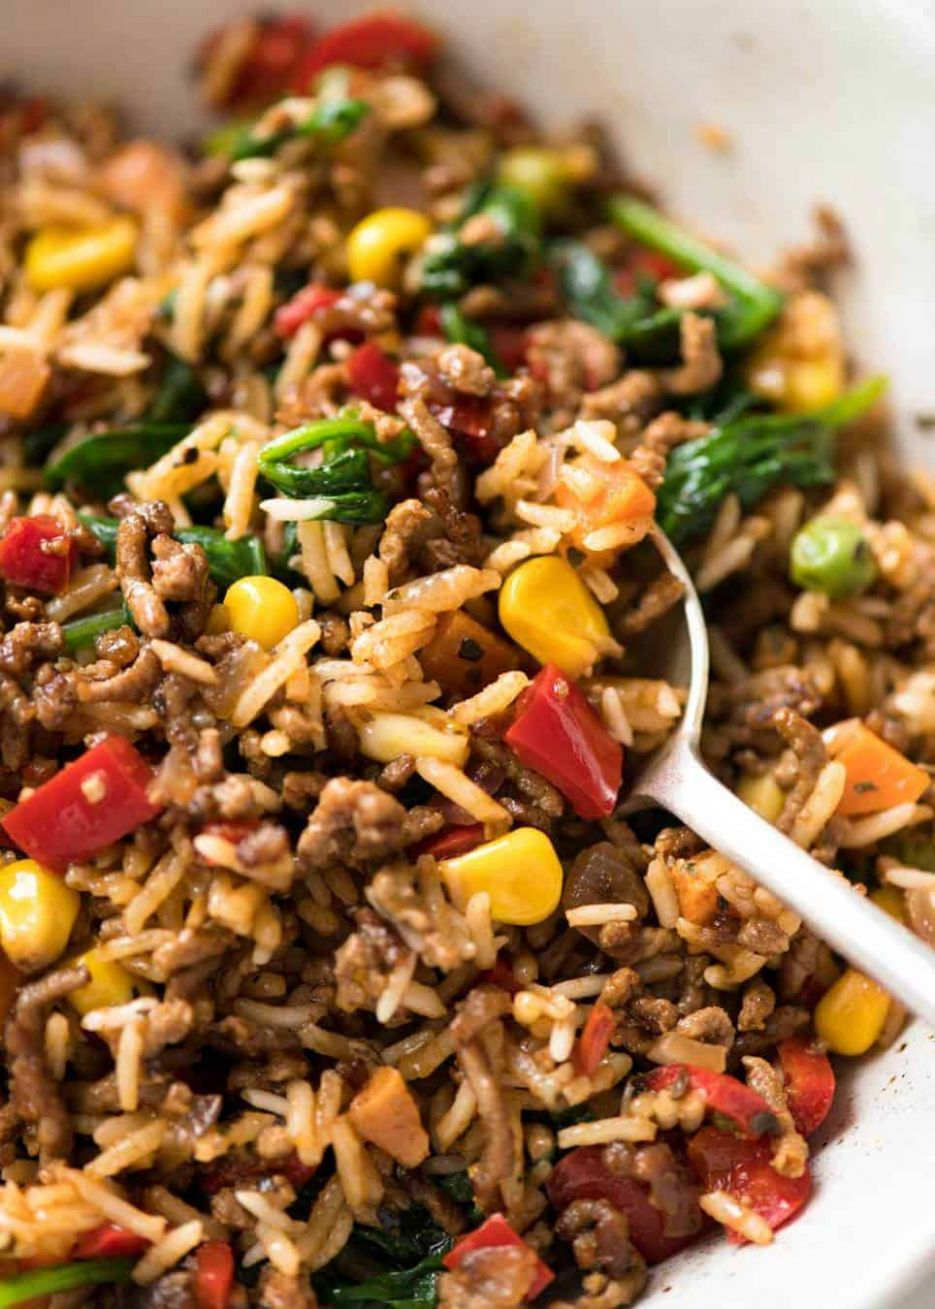 Beef and Rice with Veggies - Recipes Rice Ground Beef